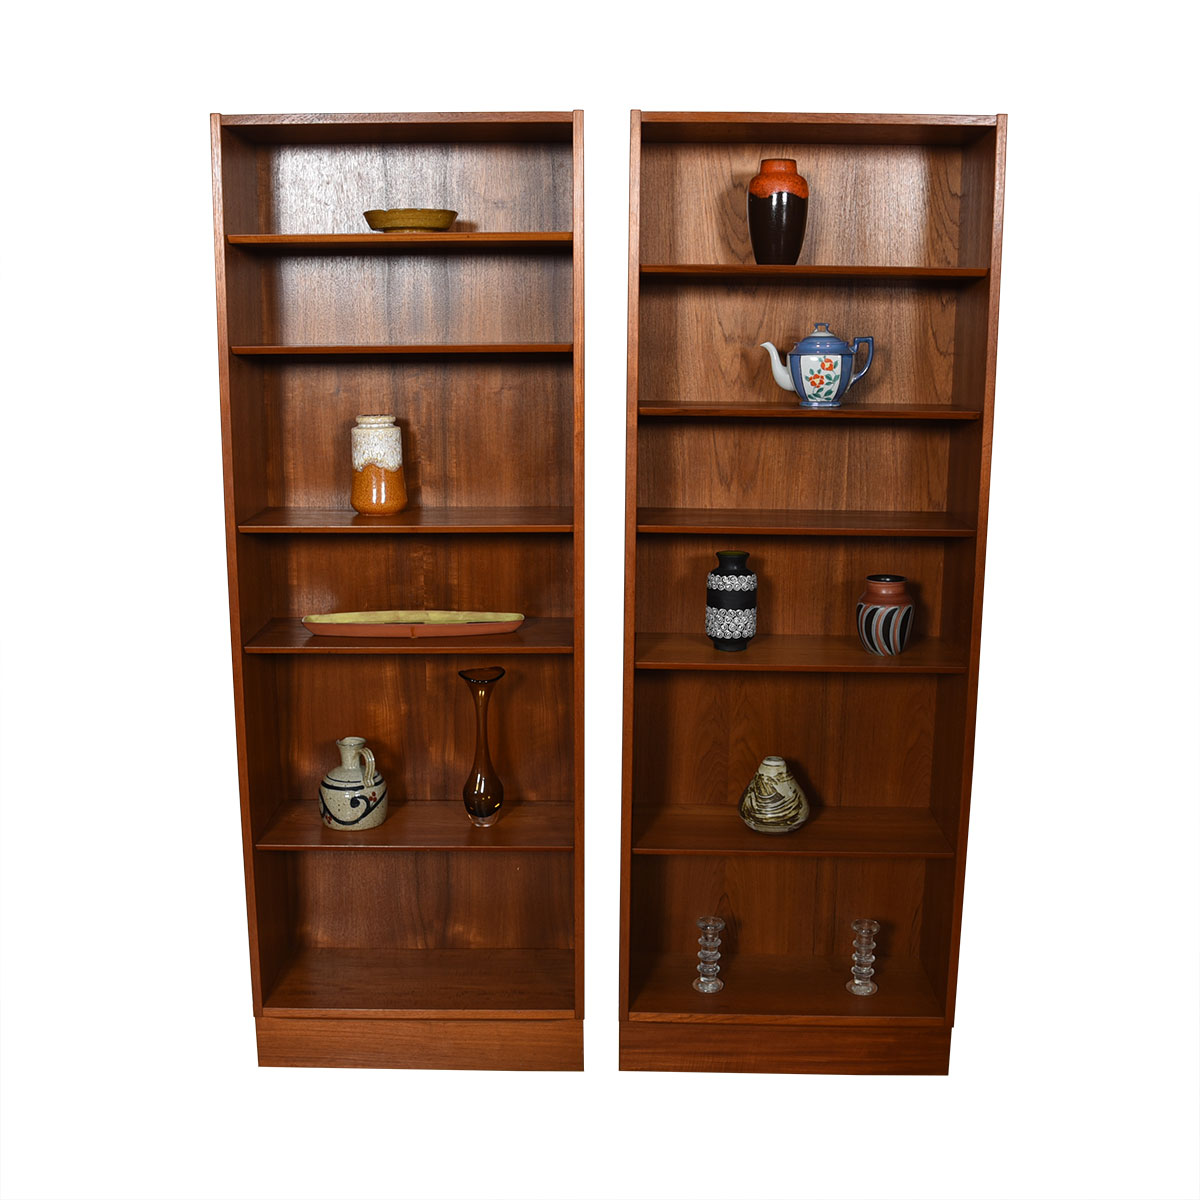 Pair of Tall Teak Bookcases w/ Adjustable Shelves